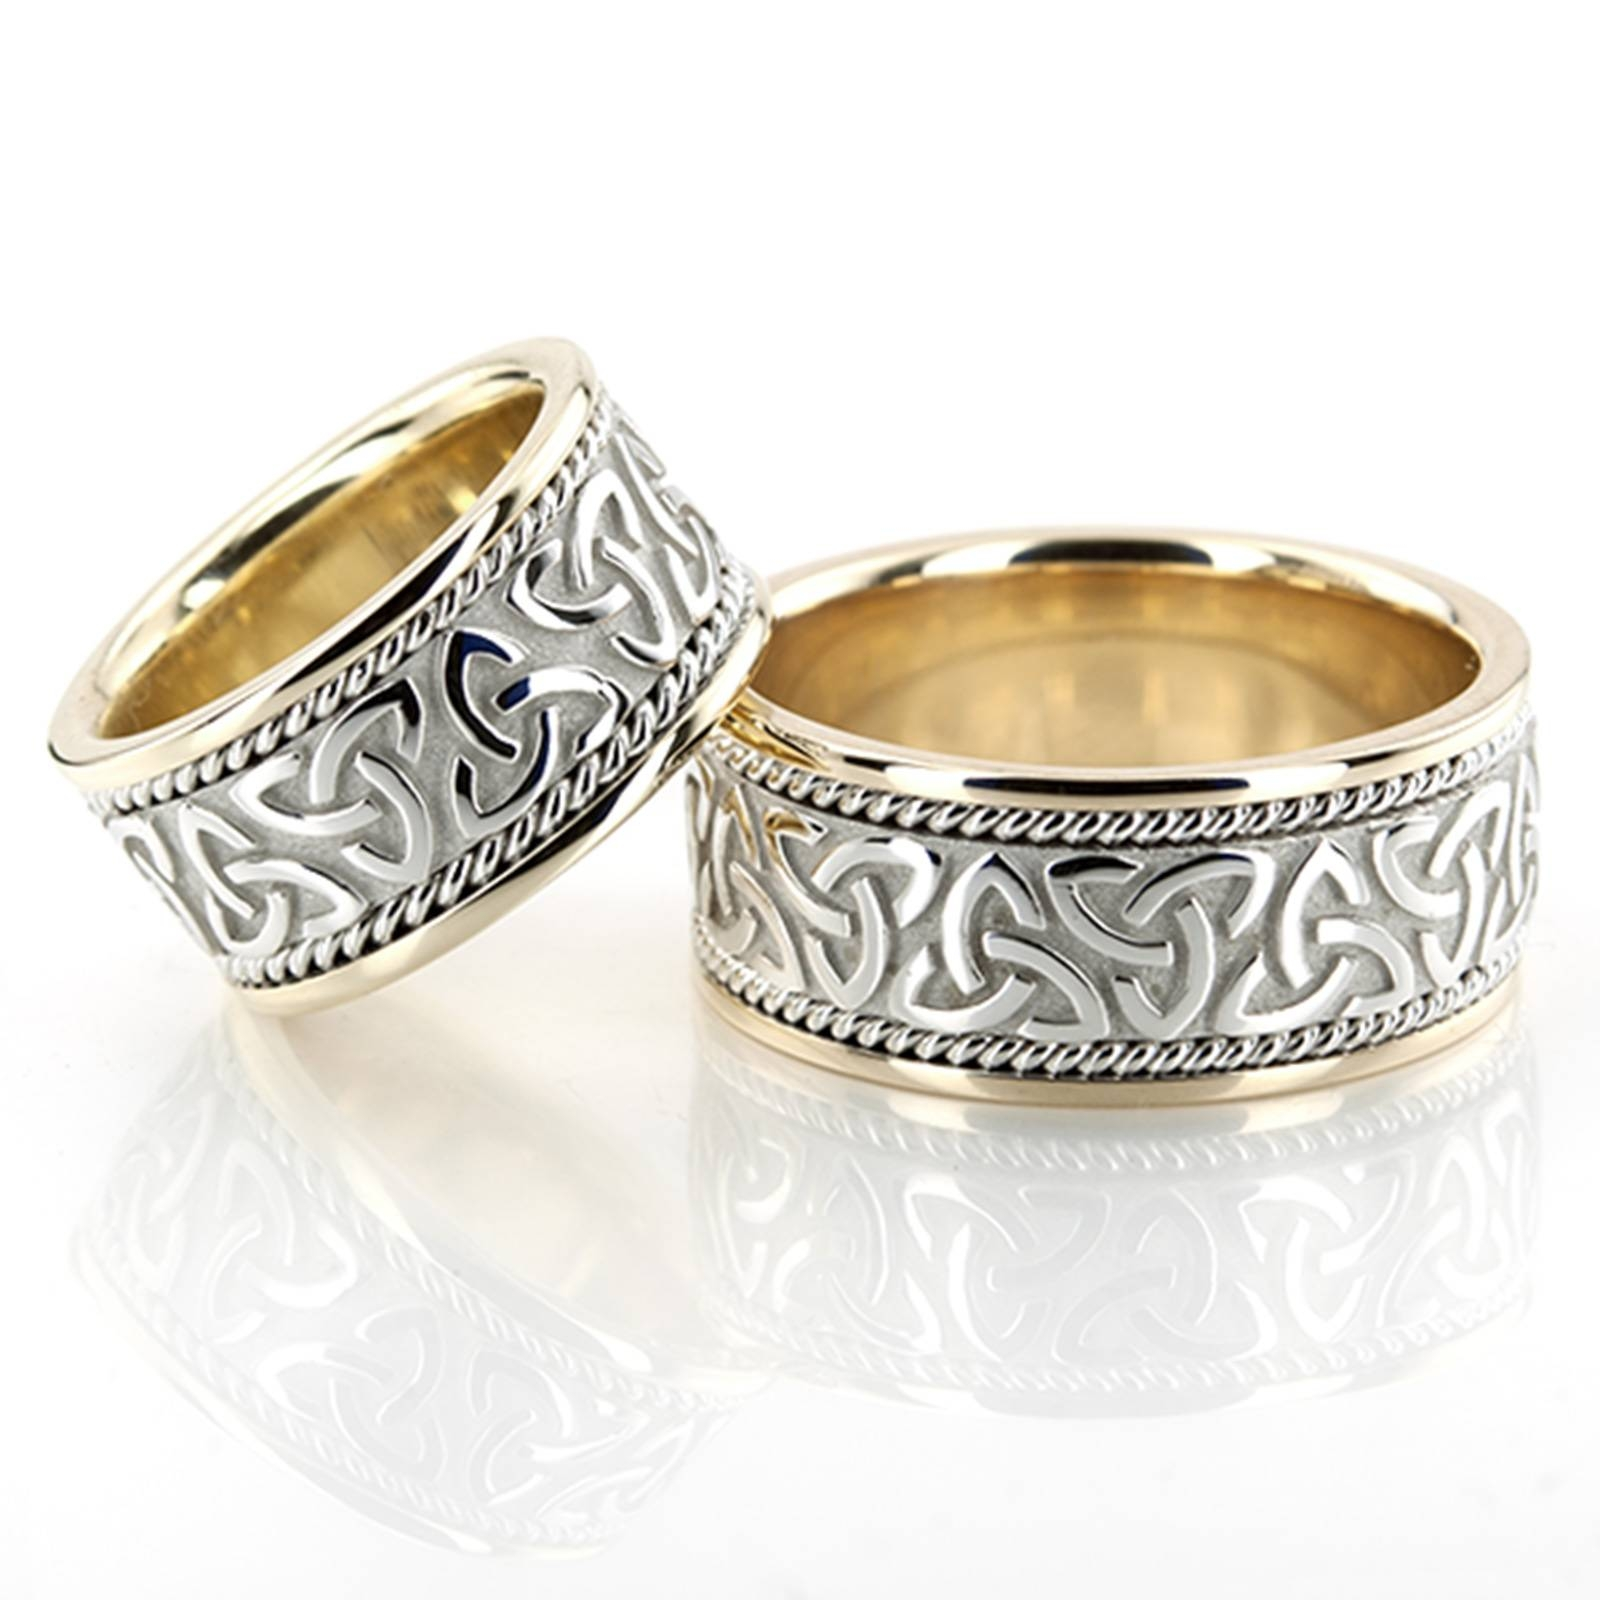 21 Irish Wedding Rings Sets, Gold Celtic Wedding Ring Set Pertaining To Irish Wedding Bands For Women (Gallery 1 of 15)